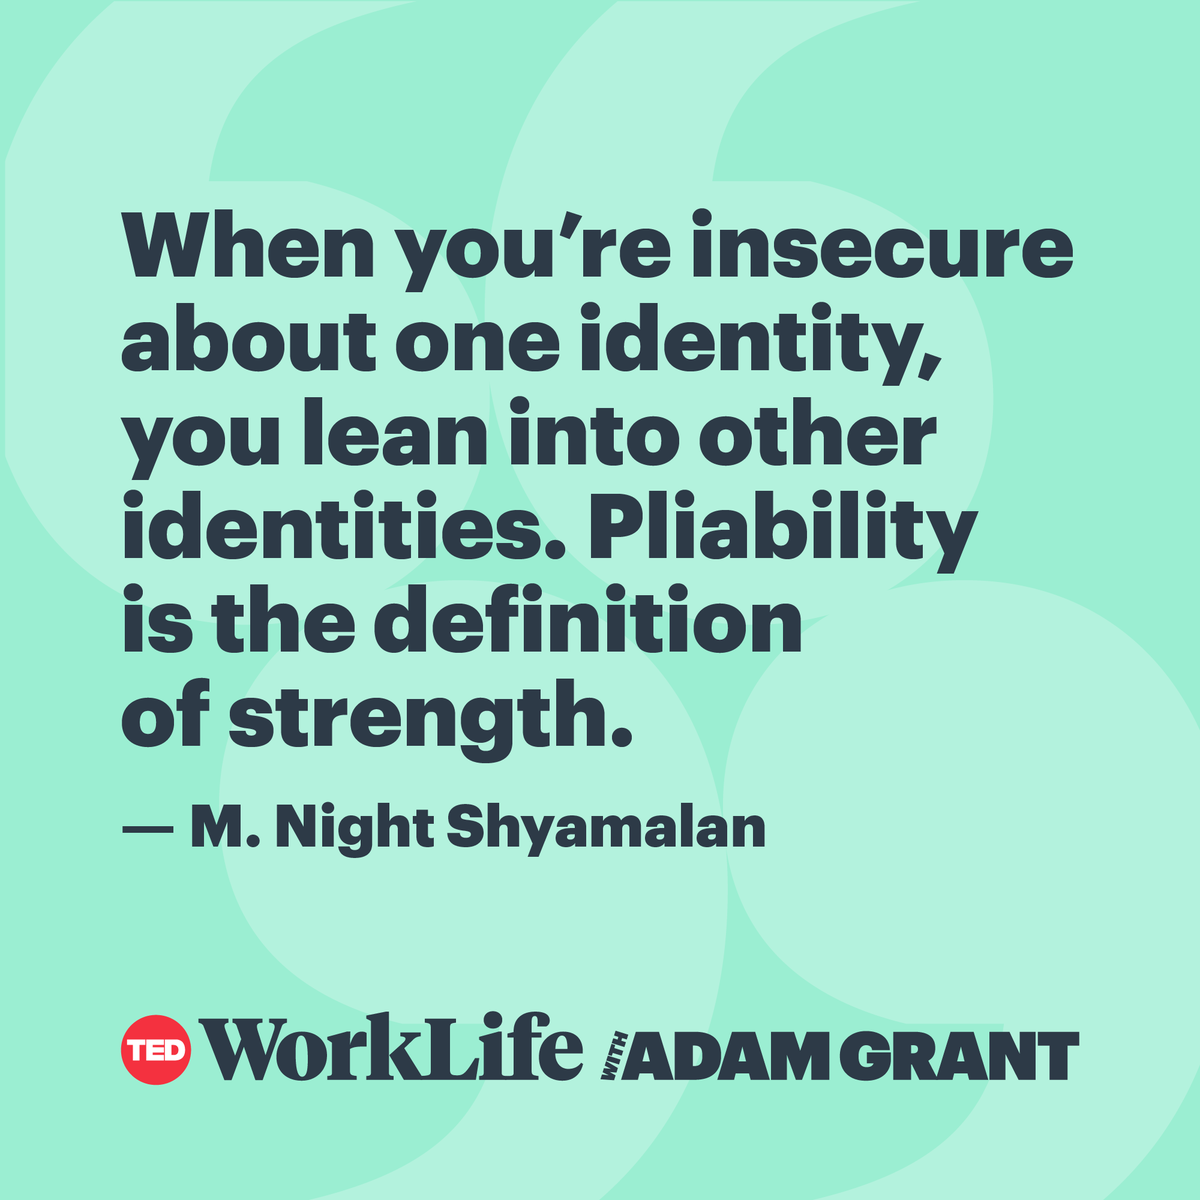 Adam Grant's photo on #TuesdayMotivation